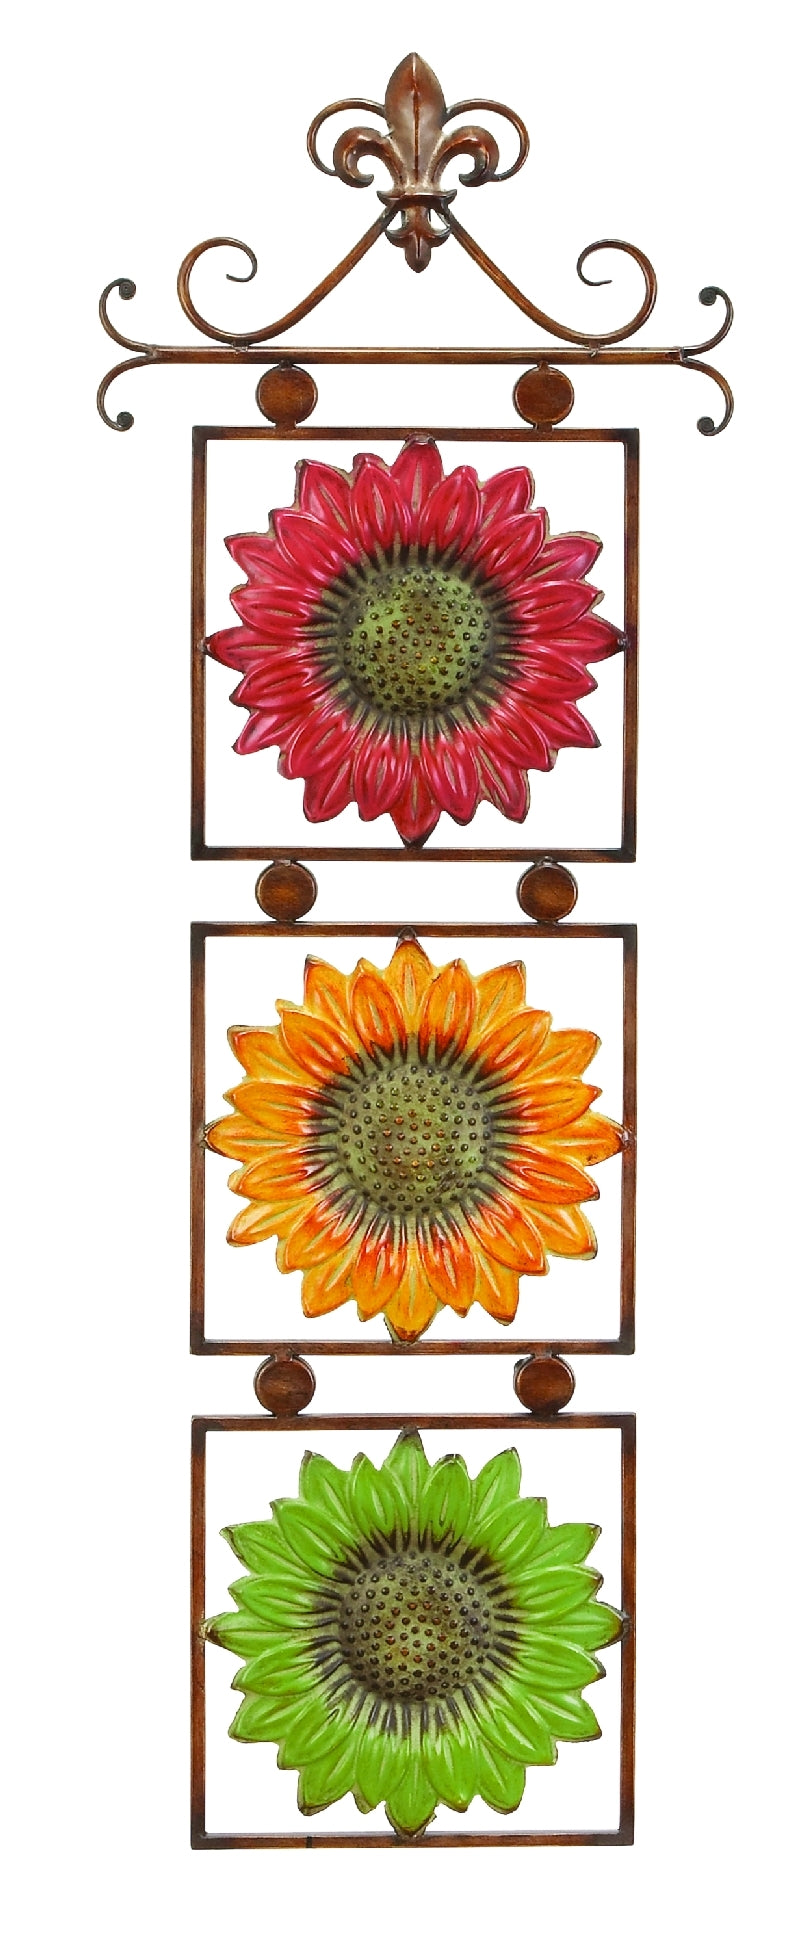 Metal Sunflower Decor 13 Inches Wide Gift For Every One